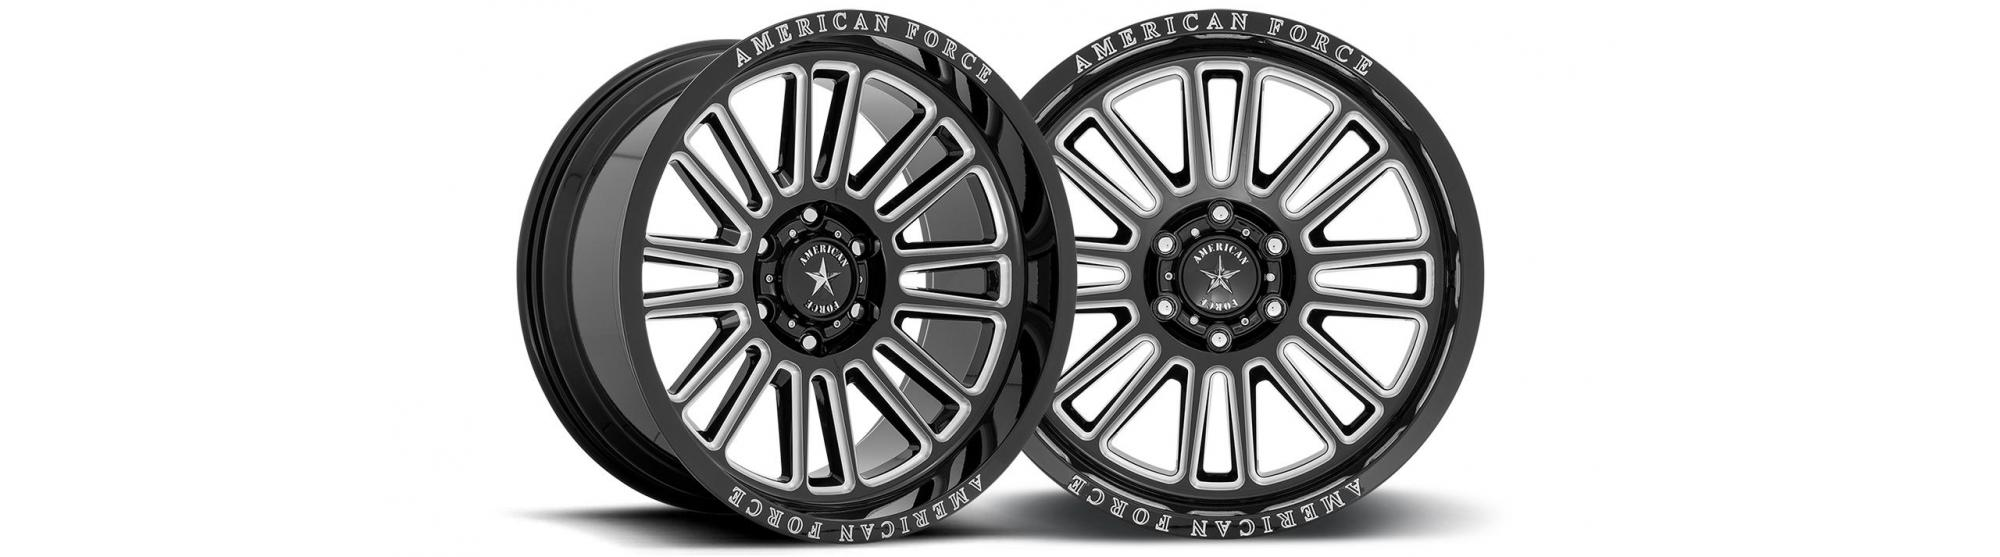 The All New Force Form AC003 Weapon from American Force Wheels